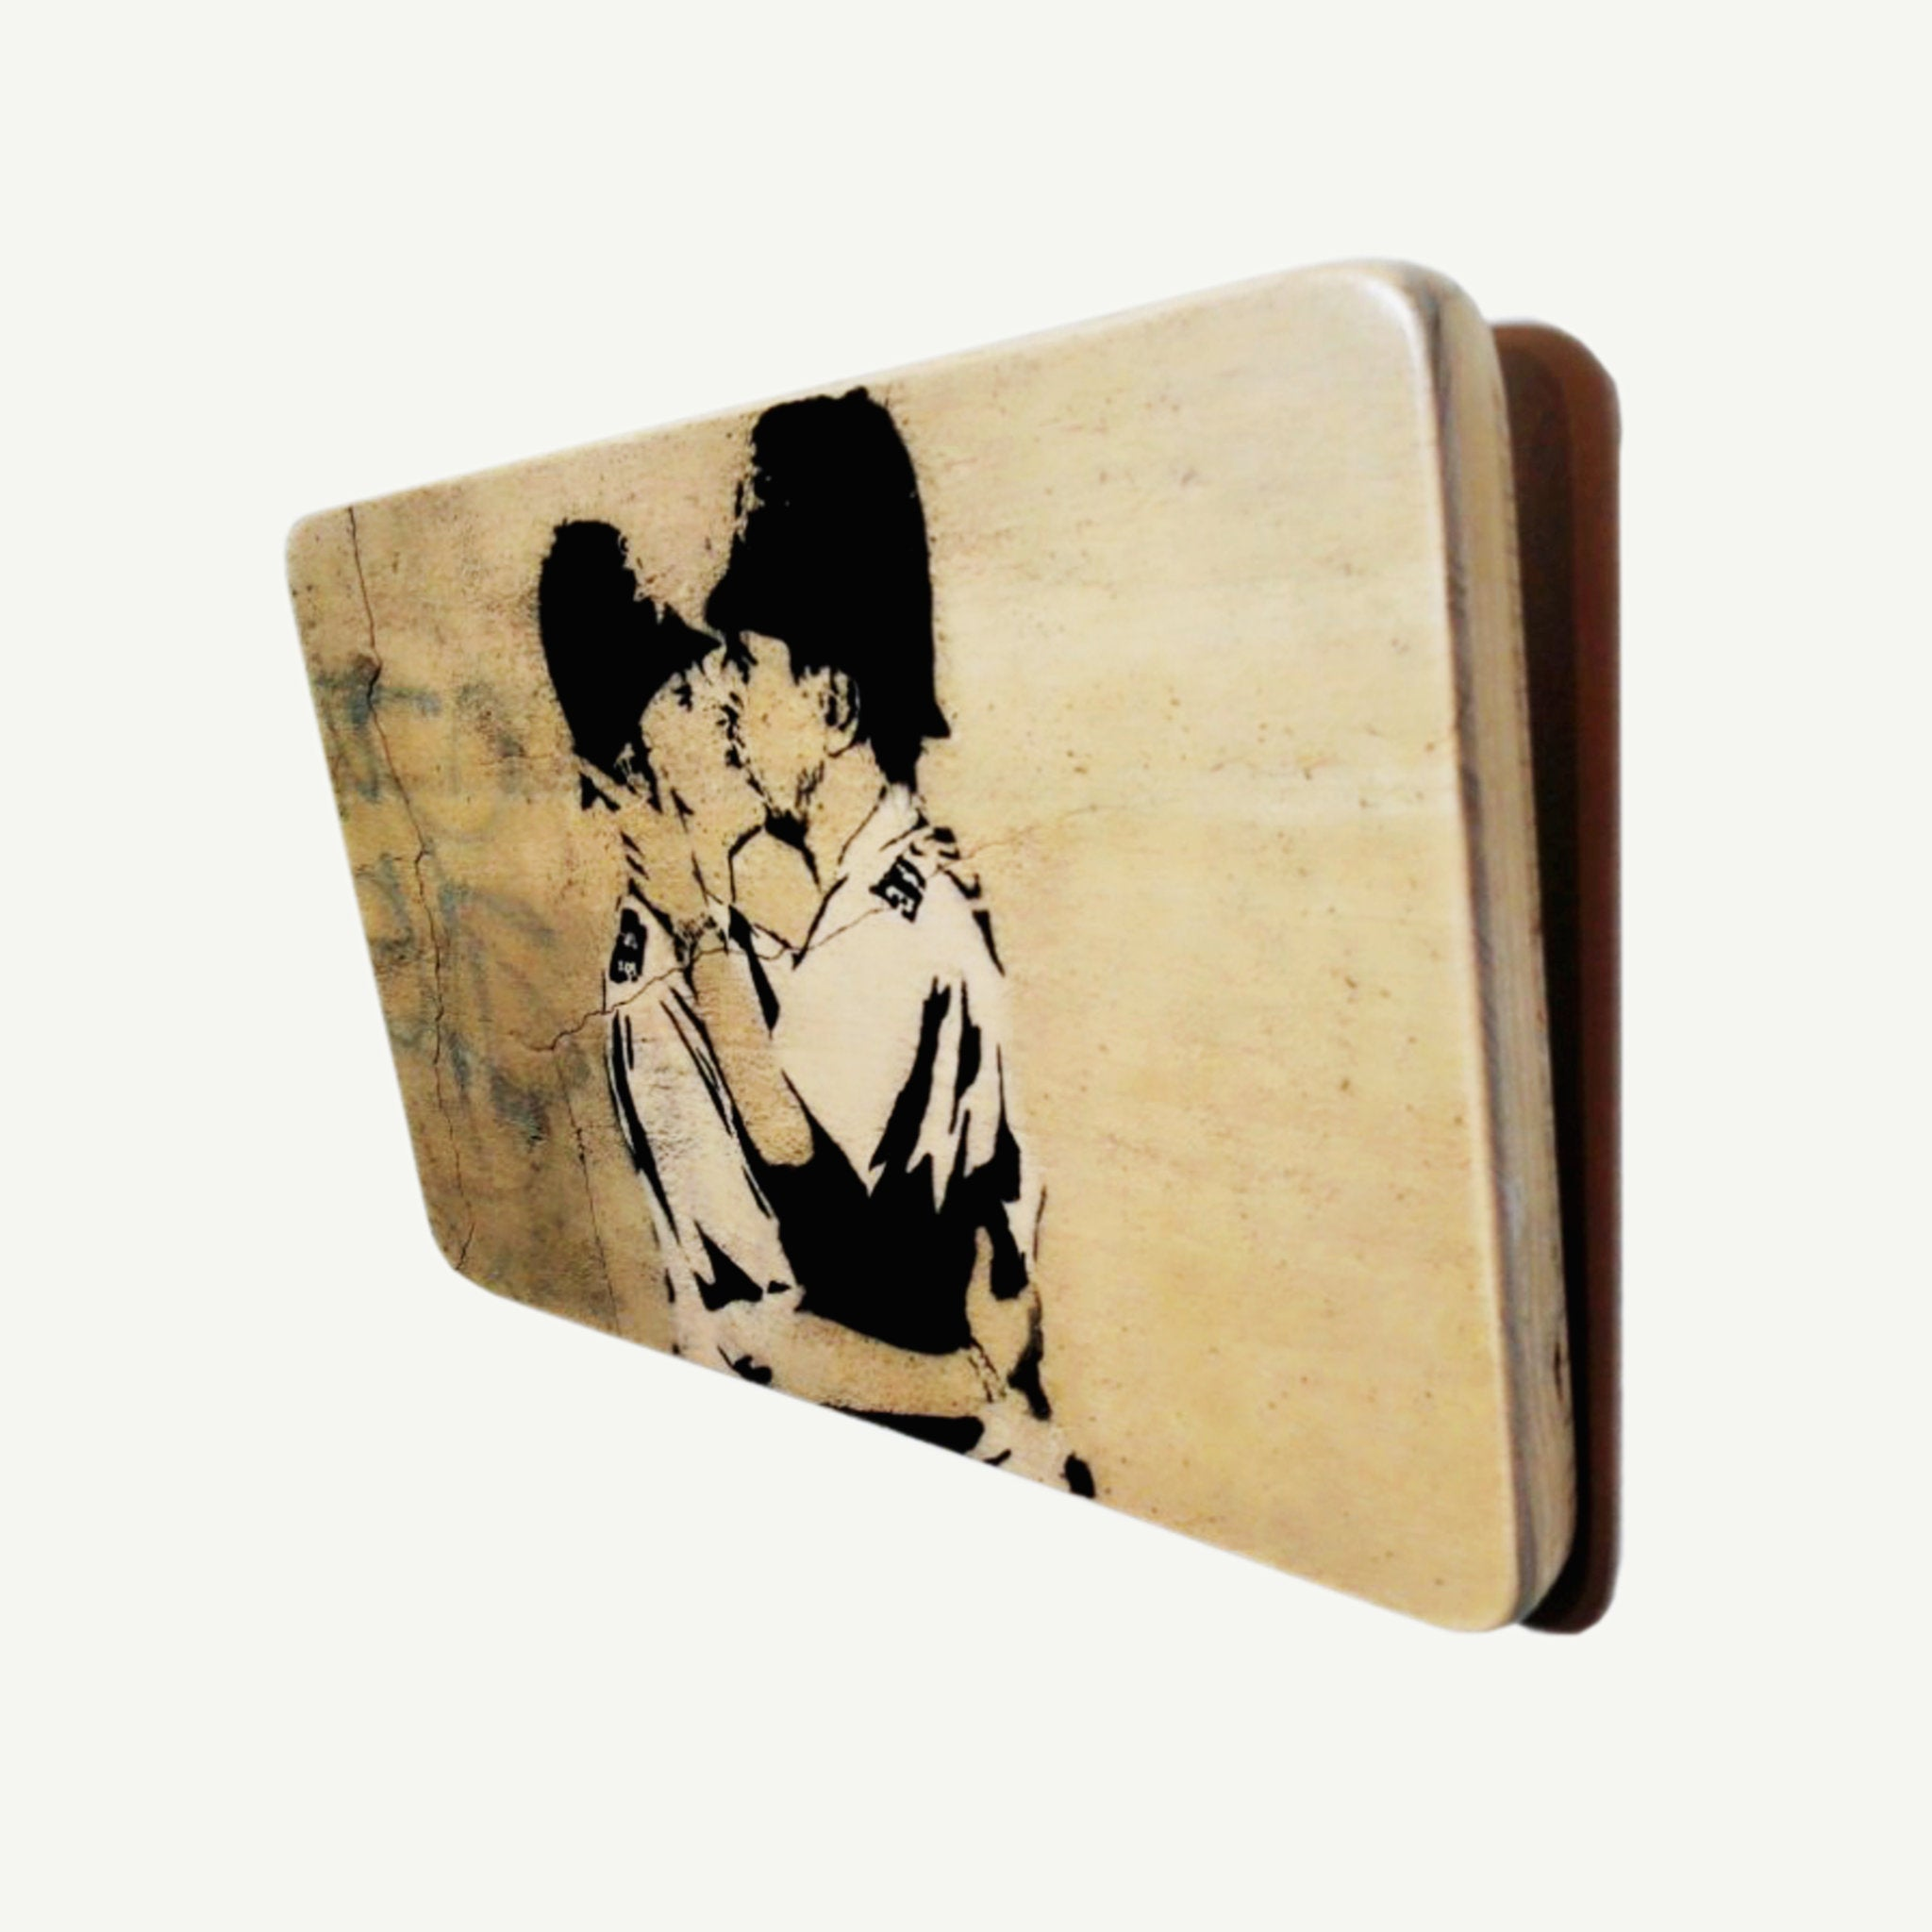 Bobbies - Gay kiss - Banksy - Upcycle Art wood print handmade - https://artesanalwoodprint.com